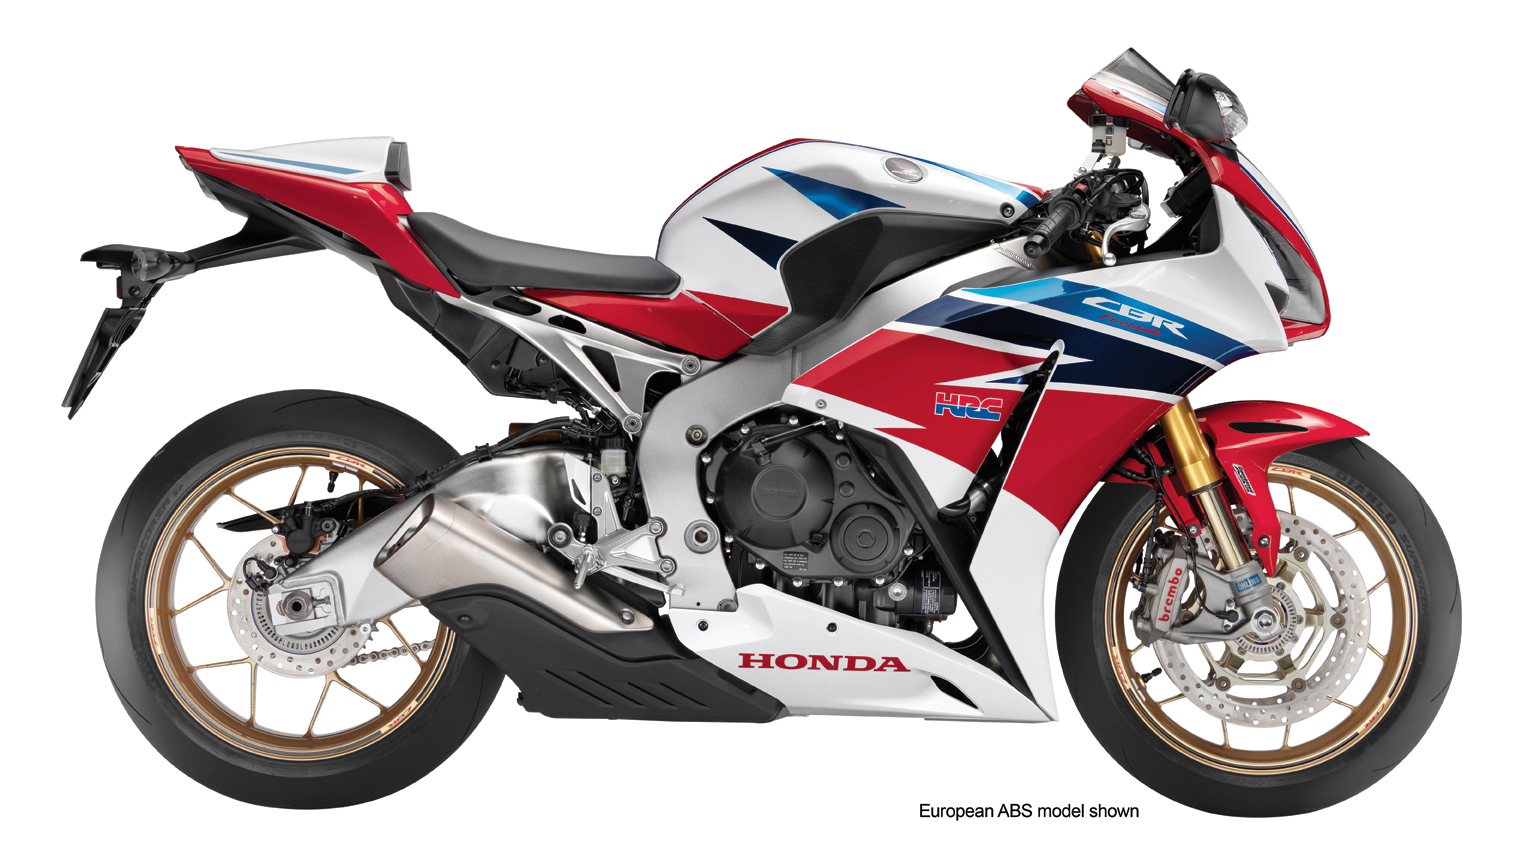 The 2014 Honda CBR1000RR SP benefits from a special HRC tri-color